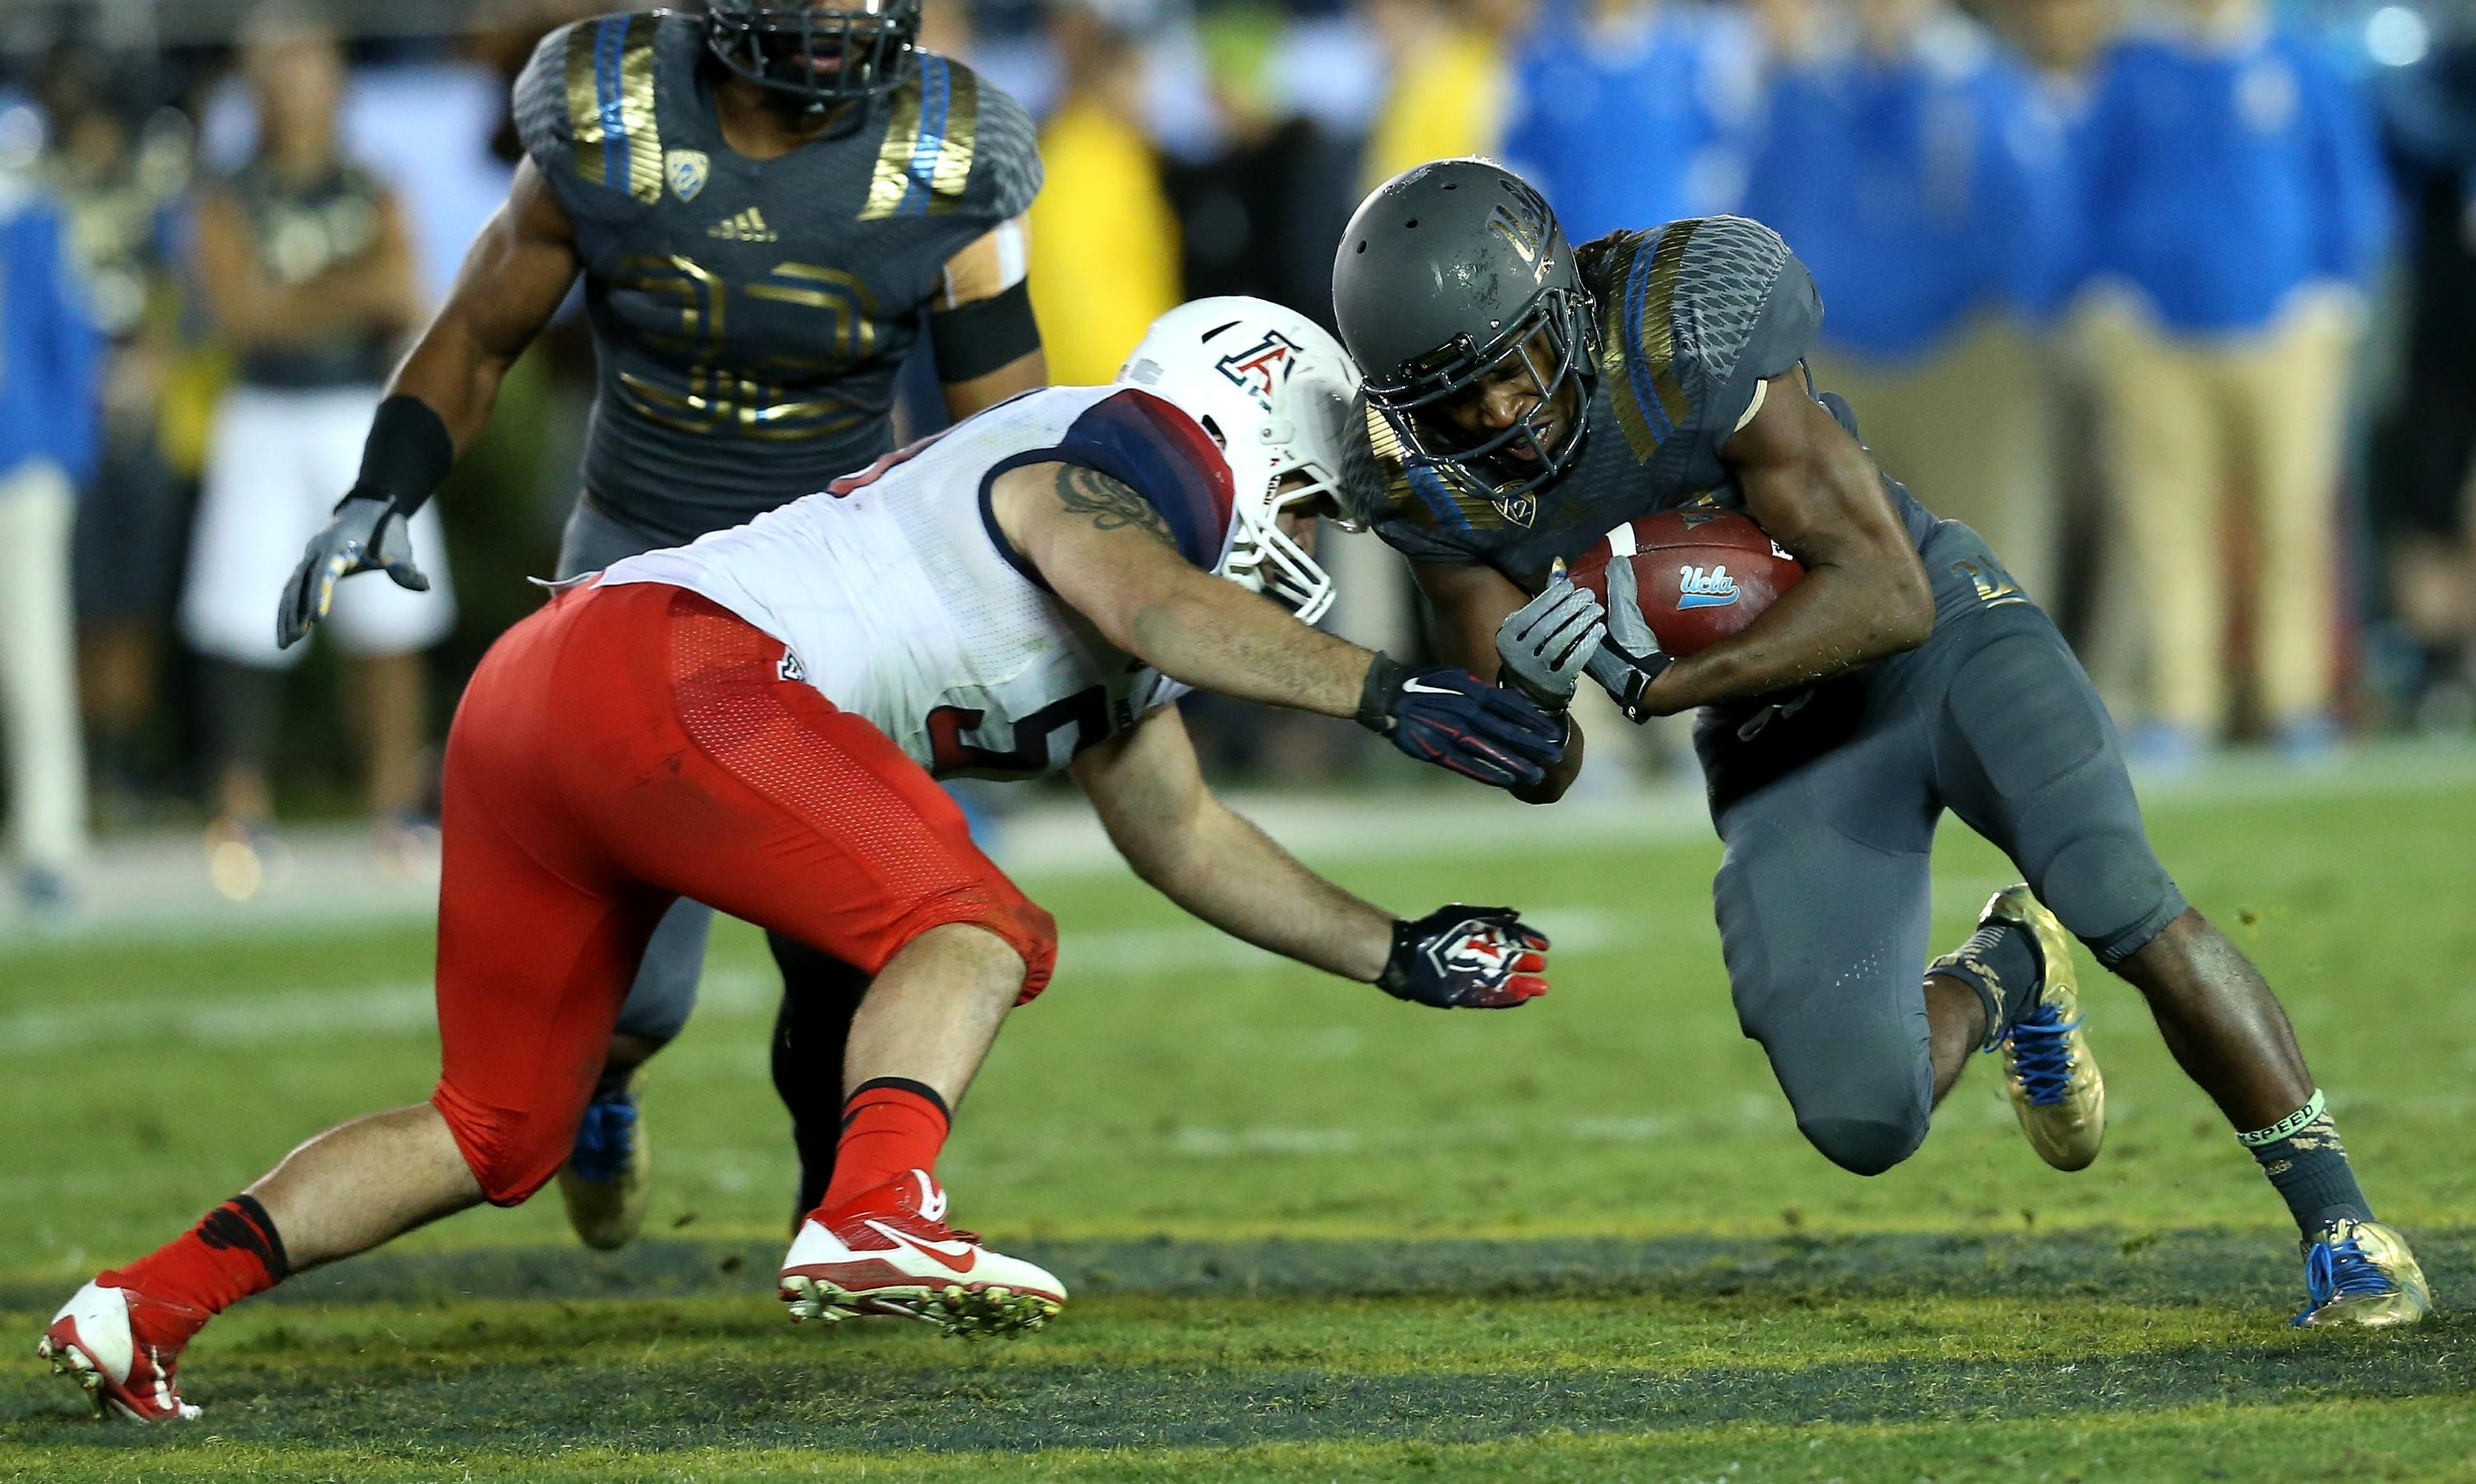 Arizona LB Cody Ippolito tears ACL, out for 2015